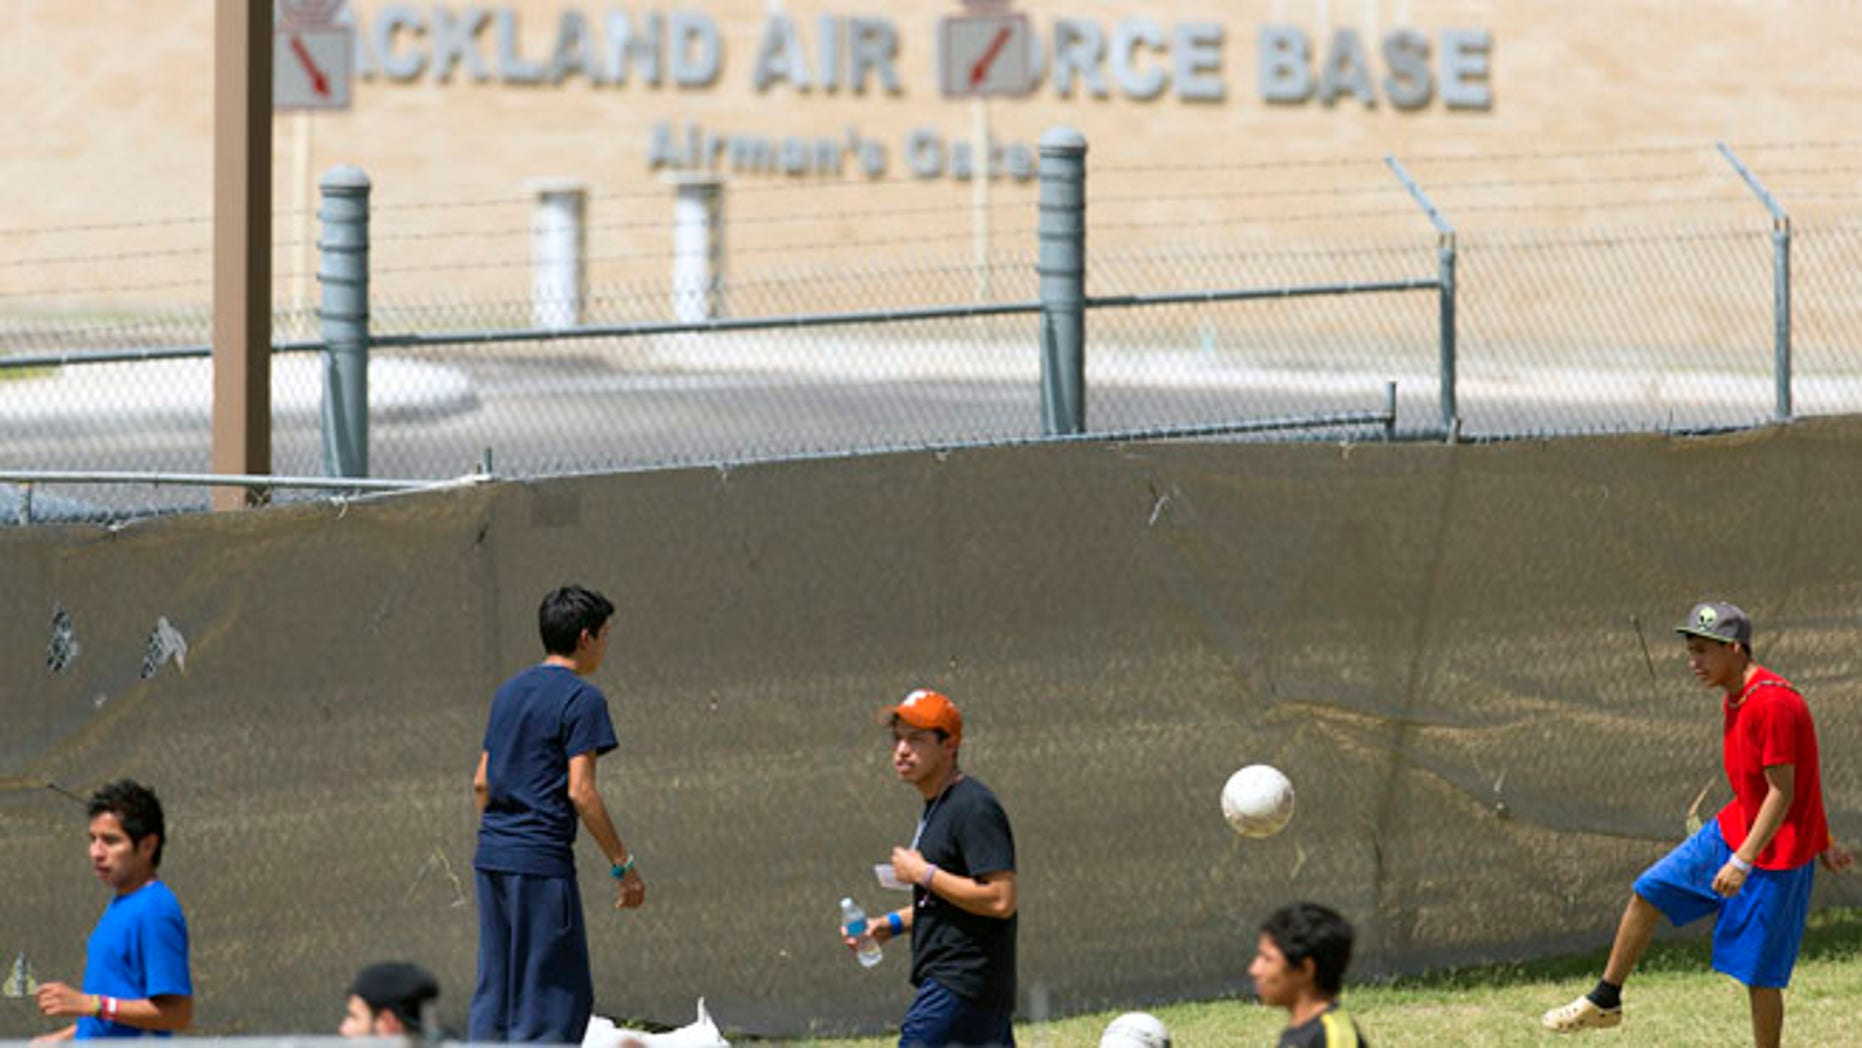 July 2, 2014: Young illegal immigrants in housing area on Lackland Air Force Base in San Antonio, Texas.